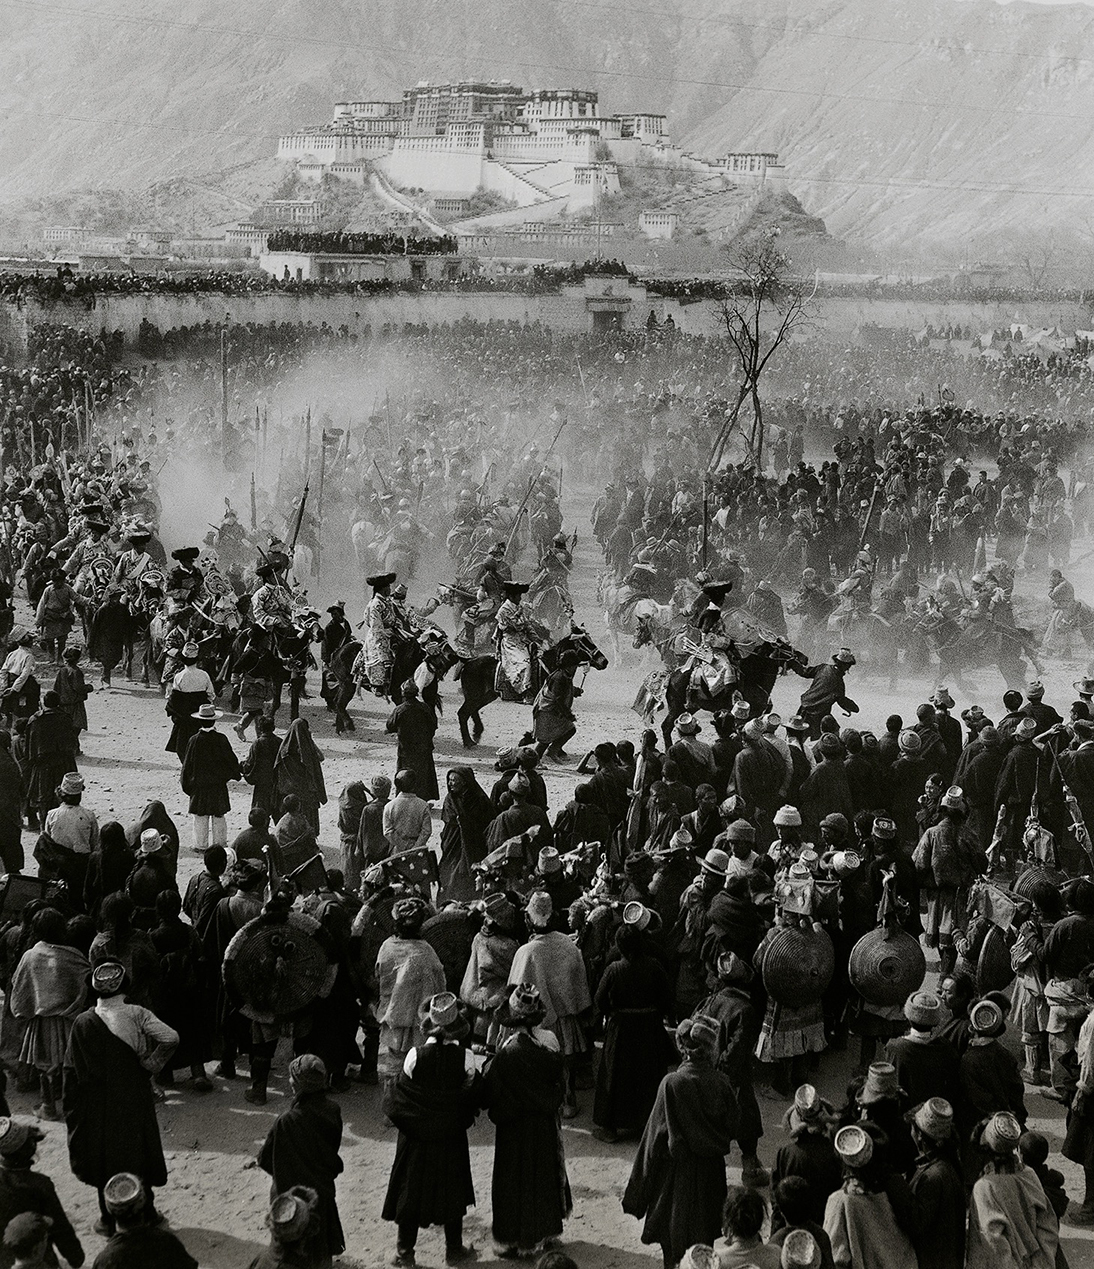 Lan Zhigui, The Happy Festival of Lhasa, Lhasa, 1958, 50.8×40.8cm, courtesy of Huang Jianpeng Gallery 黄建鹏画廊